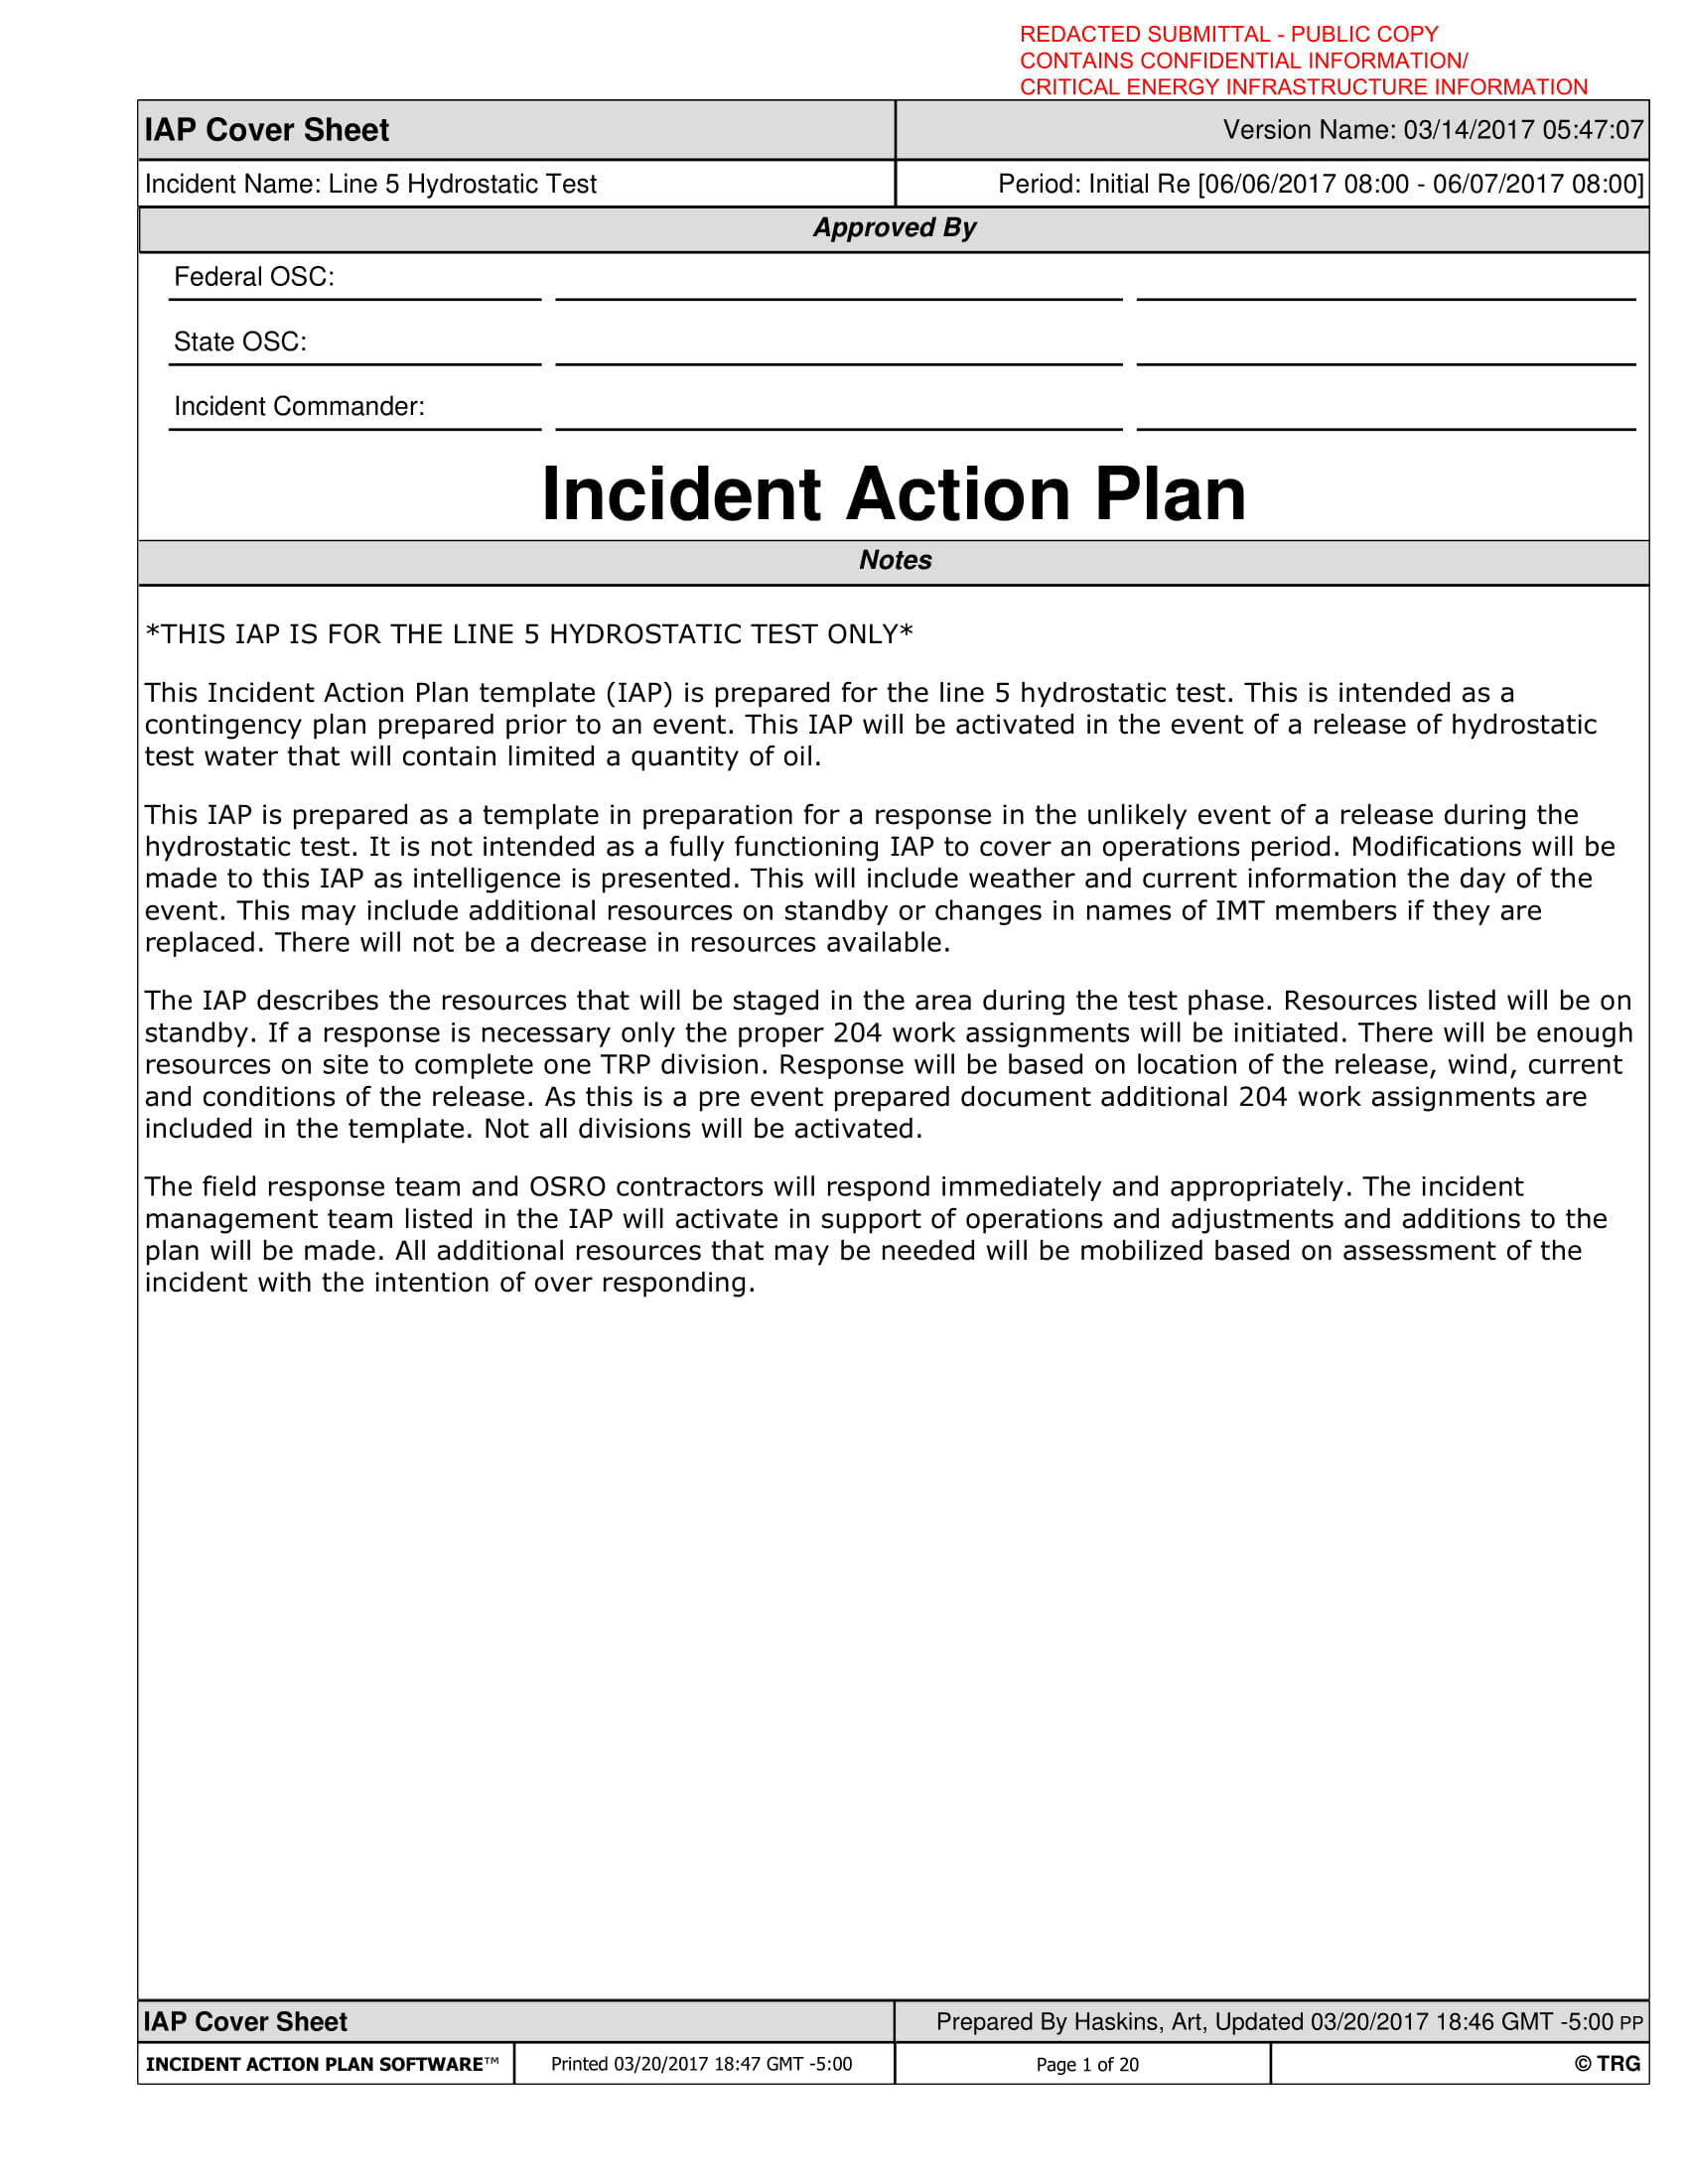 hydrostatic test incident action plan example